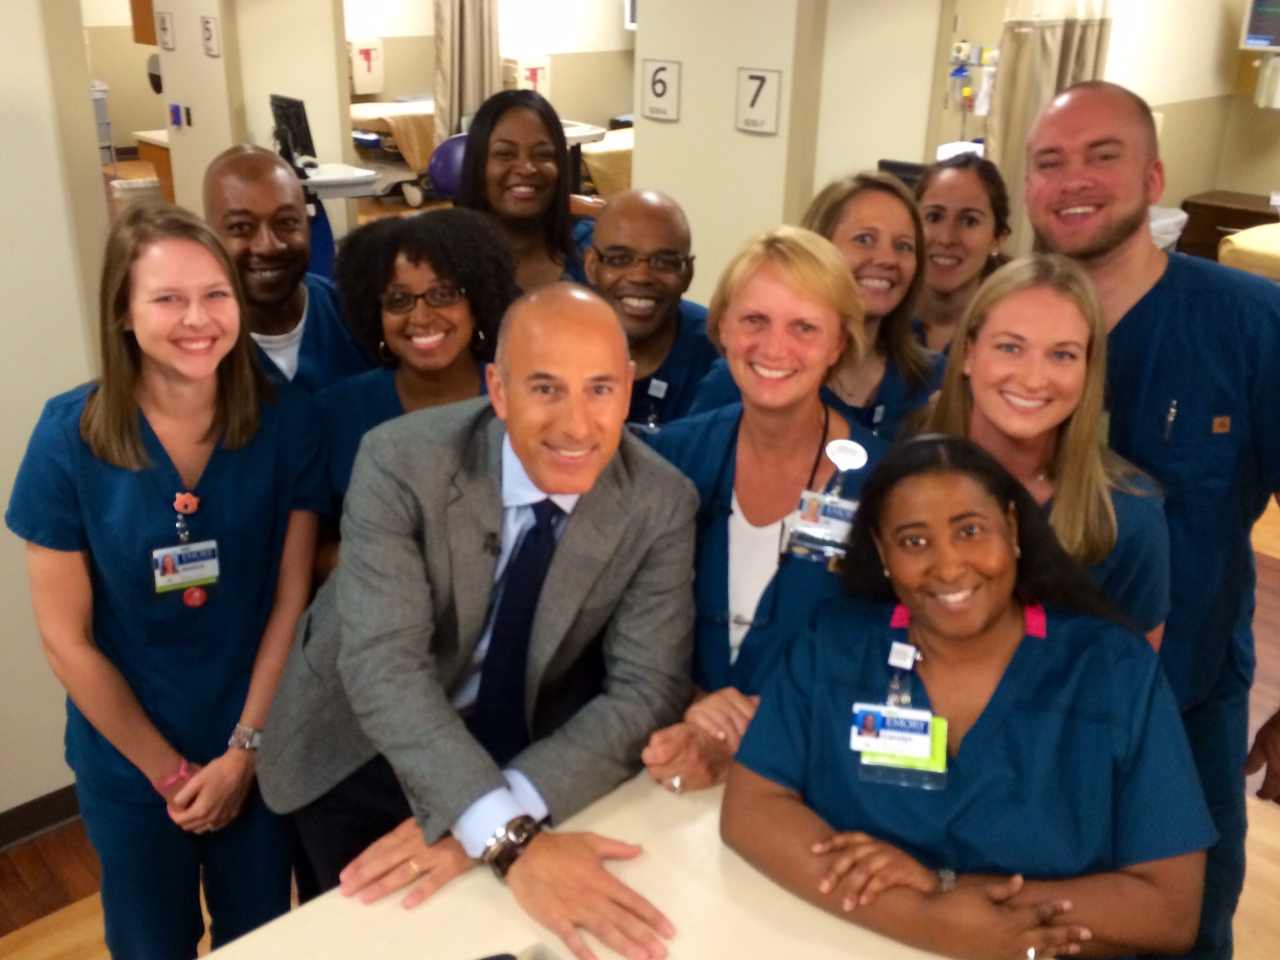 This team of nurses at Emory (pictured with Matt Lauer) were an incredible group of servants.